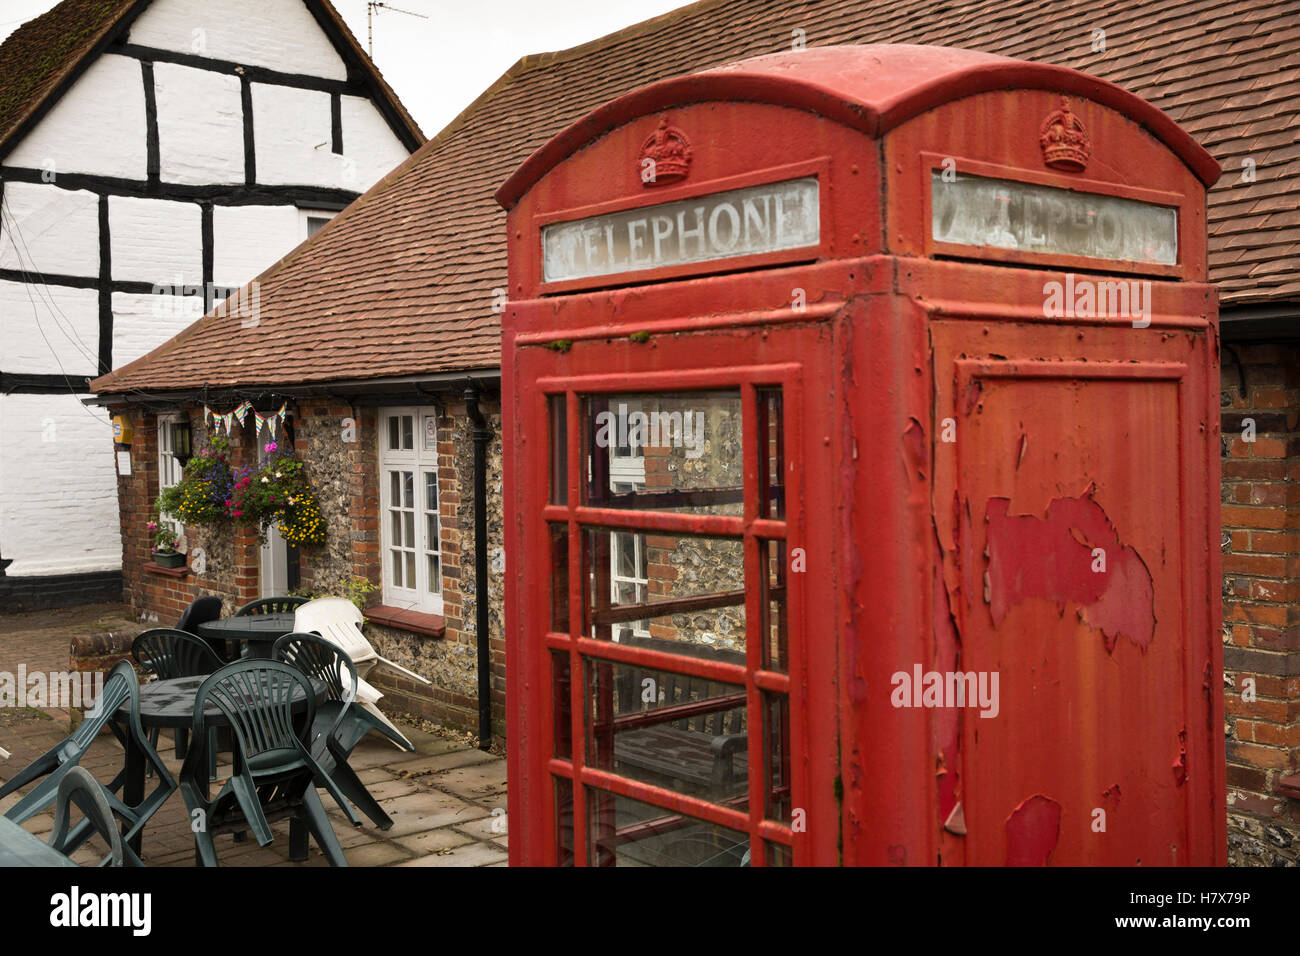 UK, England, Buckinghamshire, West Wycombe, High Street, K6 phone box outside Community Library - Stock Image